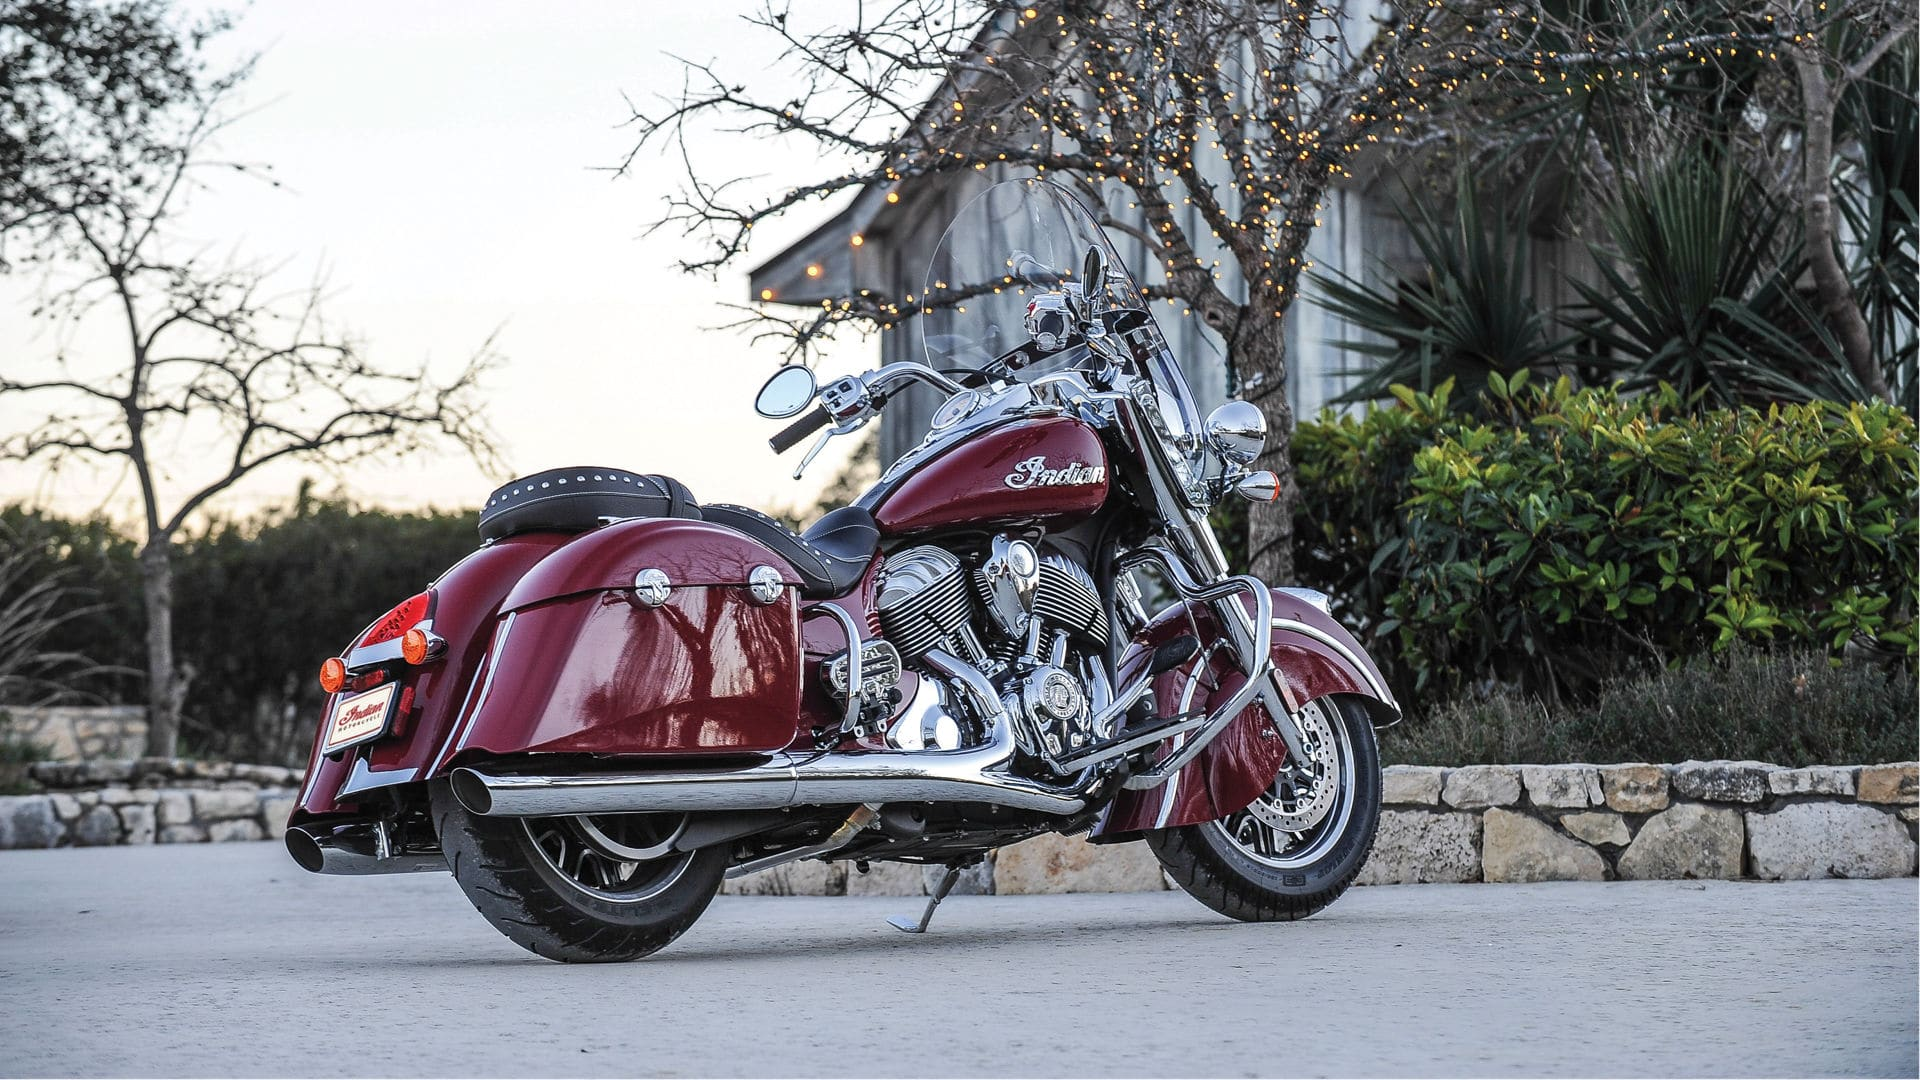 2016 Indian Springfield in Indian Motorcycle® Red.